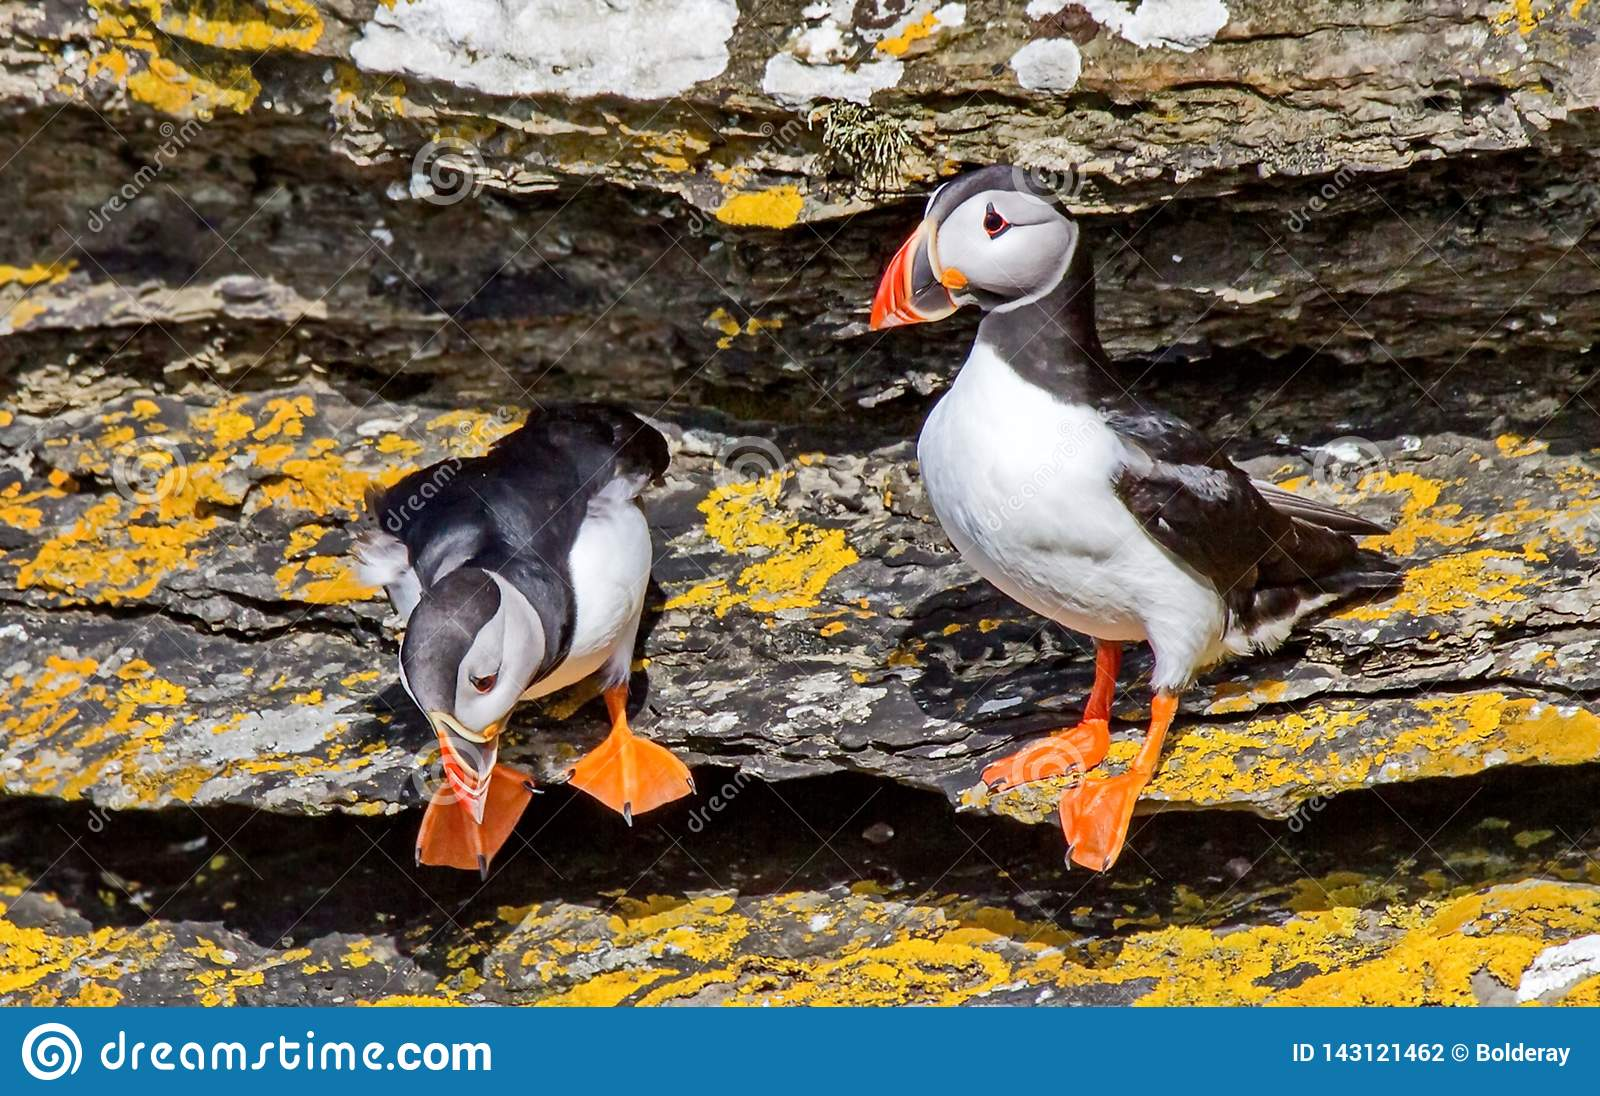 Dead end, or Atlantic dead end Fratercula arctica - a species of seabirds. They live on the coasts of the Atlantic